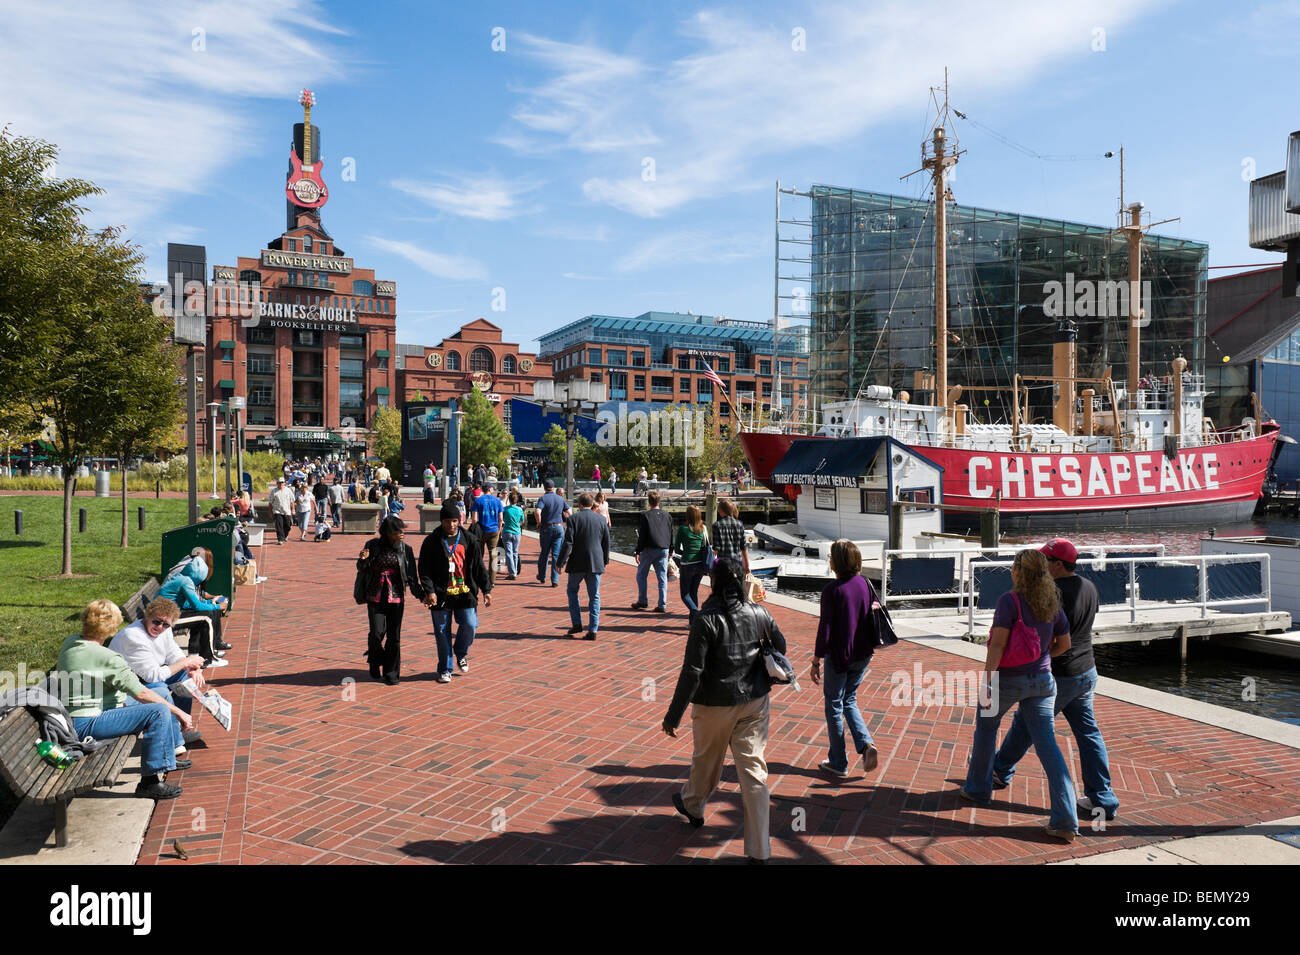 The Inner Harbor looking towards the old Power Plant and the lightship Chesapeake, Baltimore, Maryland, USA - Stock Image